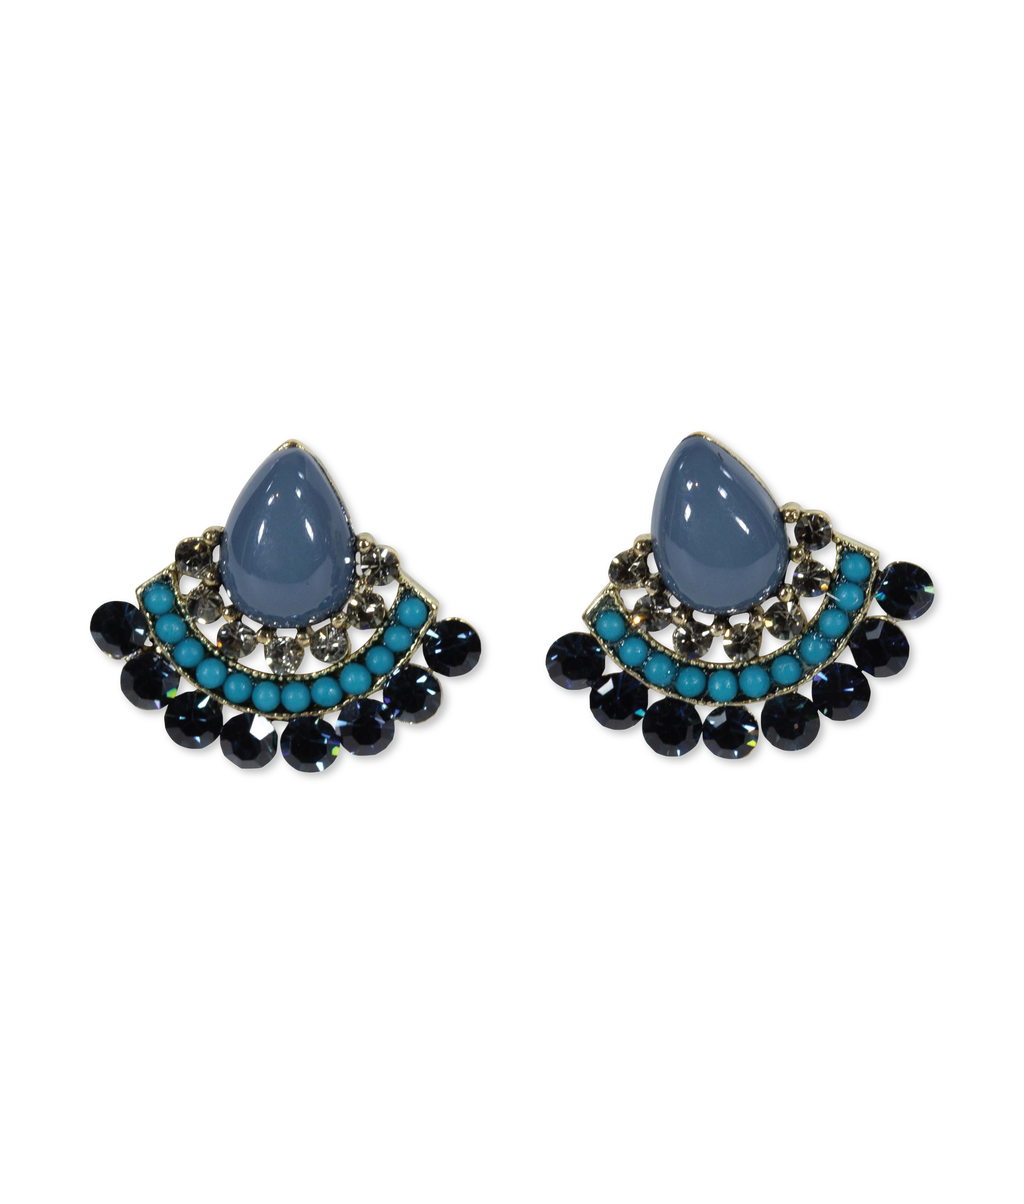 EARRINGS - Black Diamond Fan